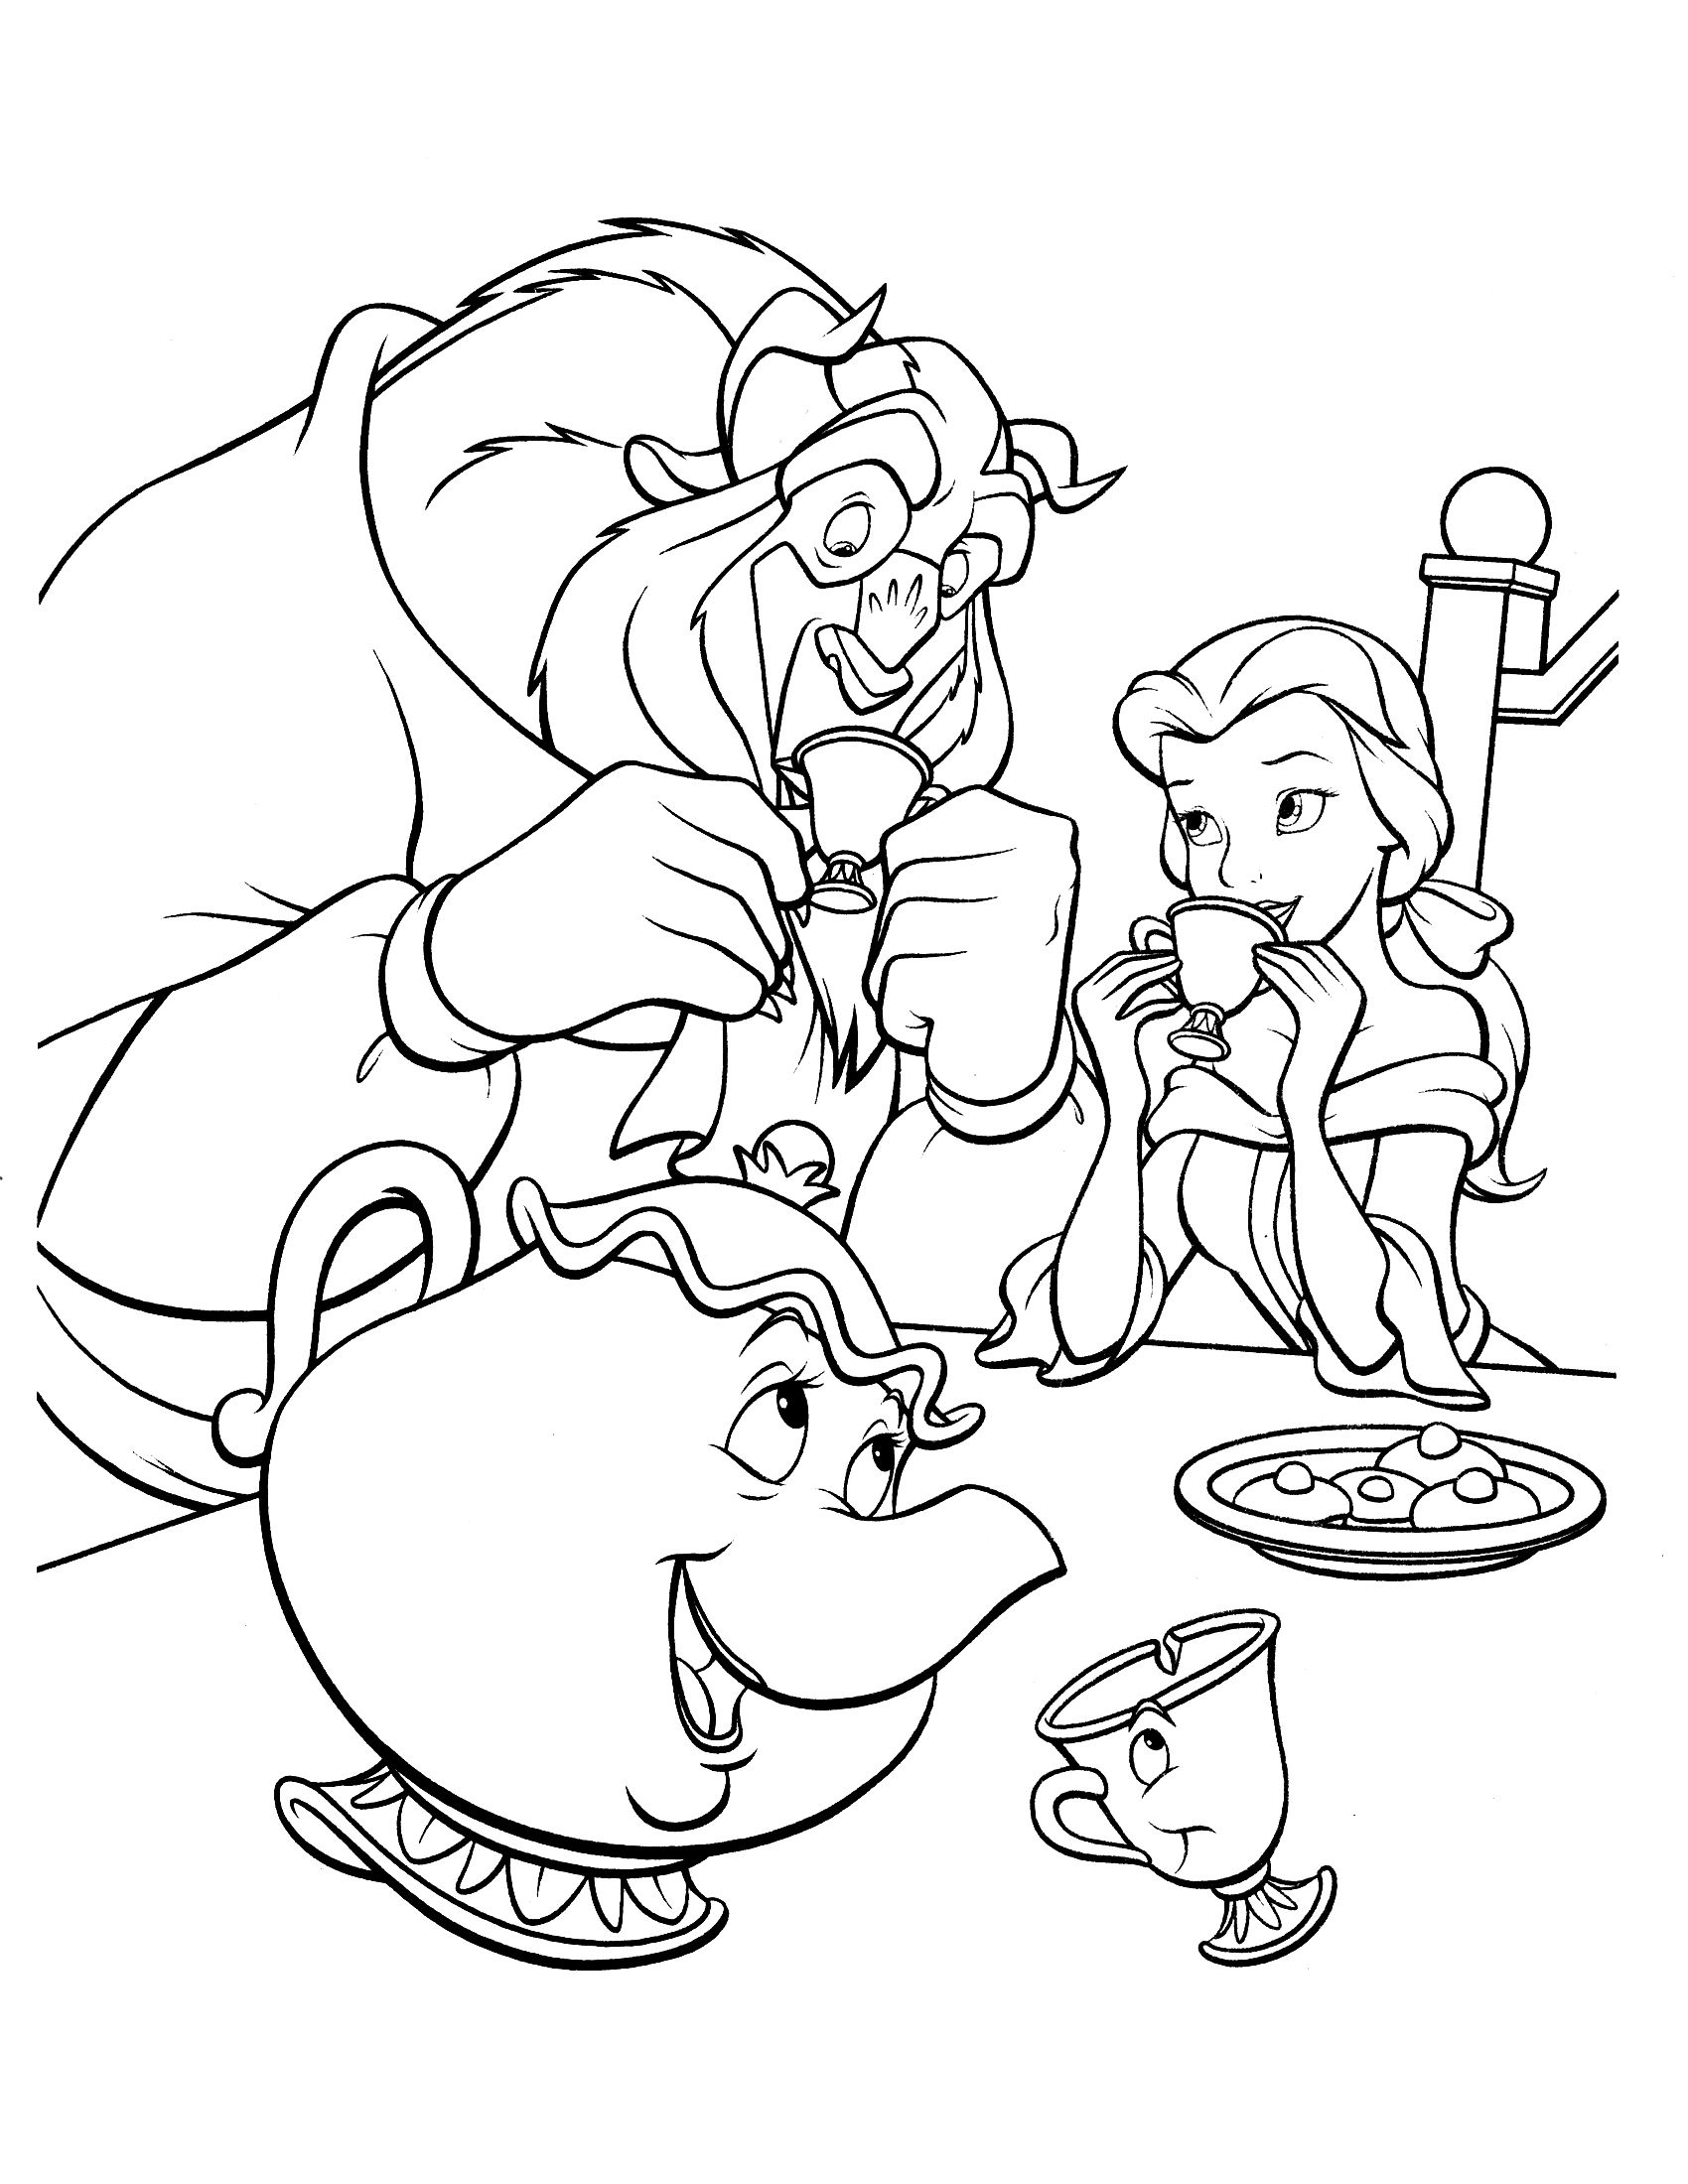 Drink together Coloring Page